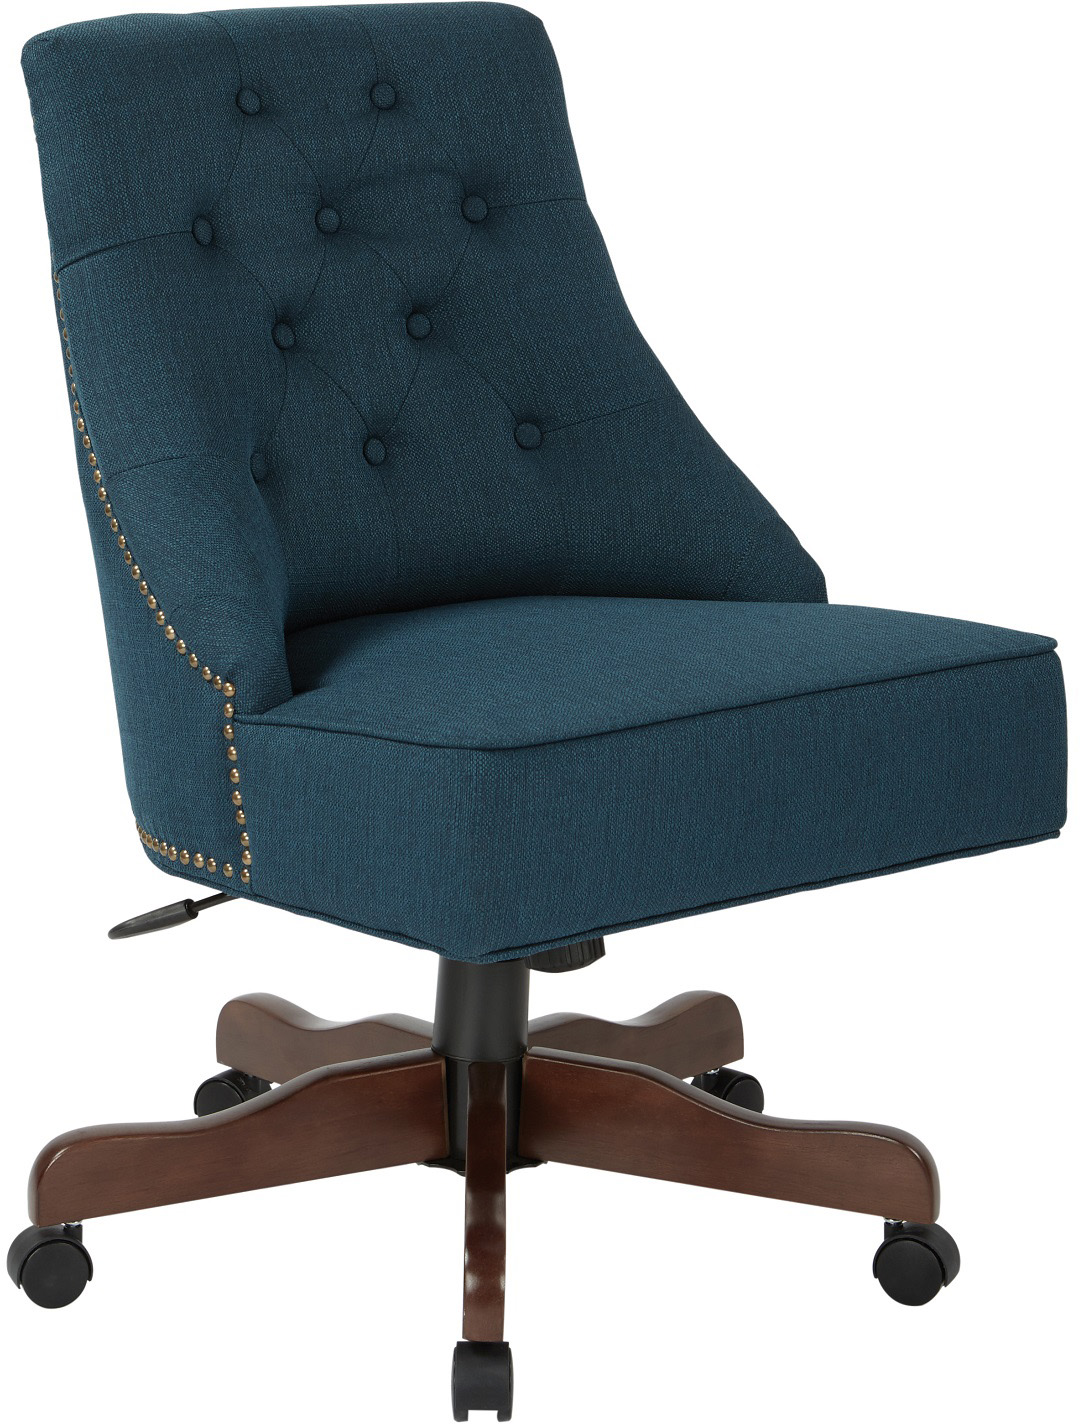 Minimalist Desk Chair Inspired By Bassett Rebecca Office Chair Azure Bp Rebex K14